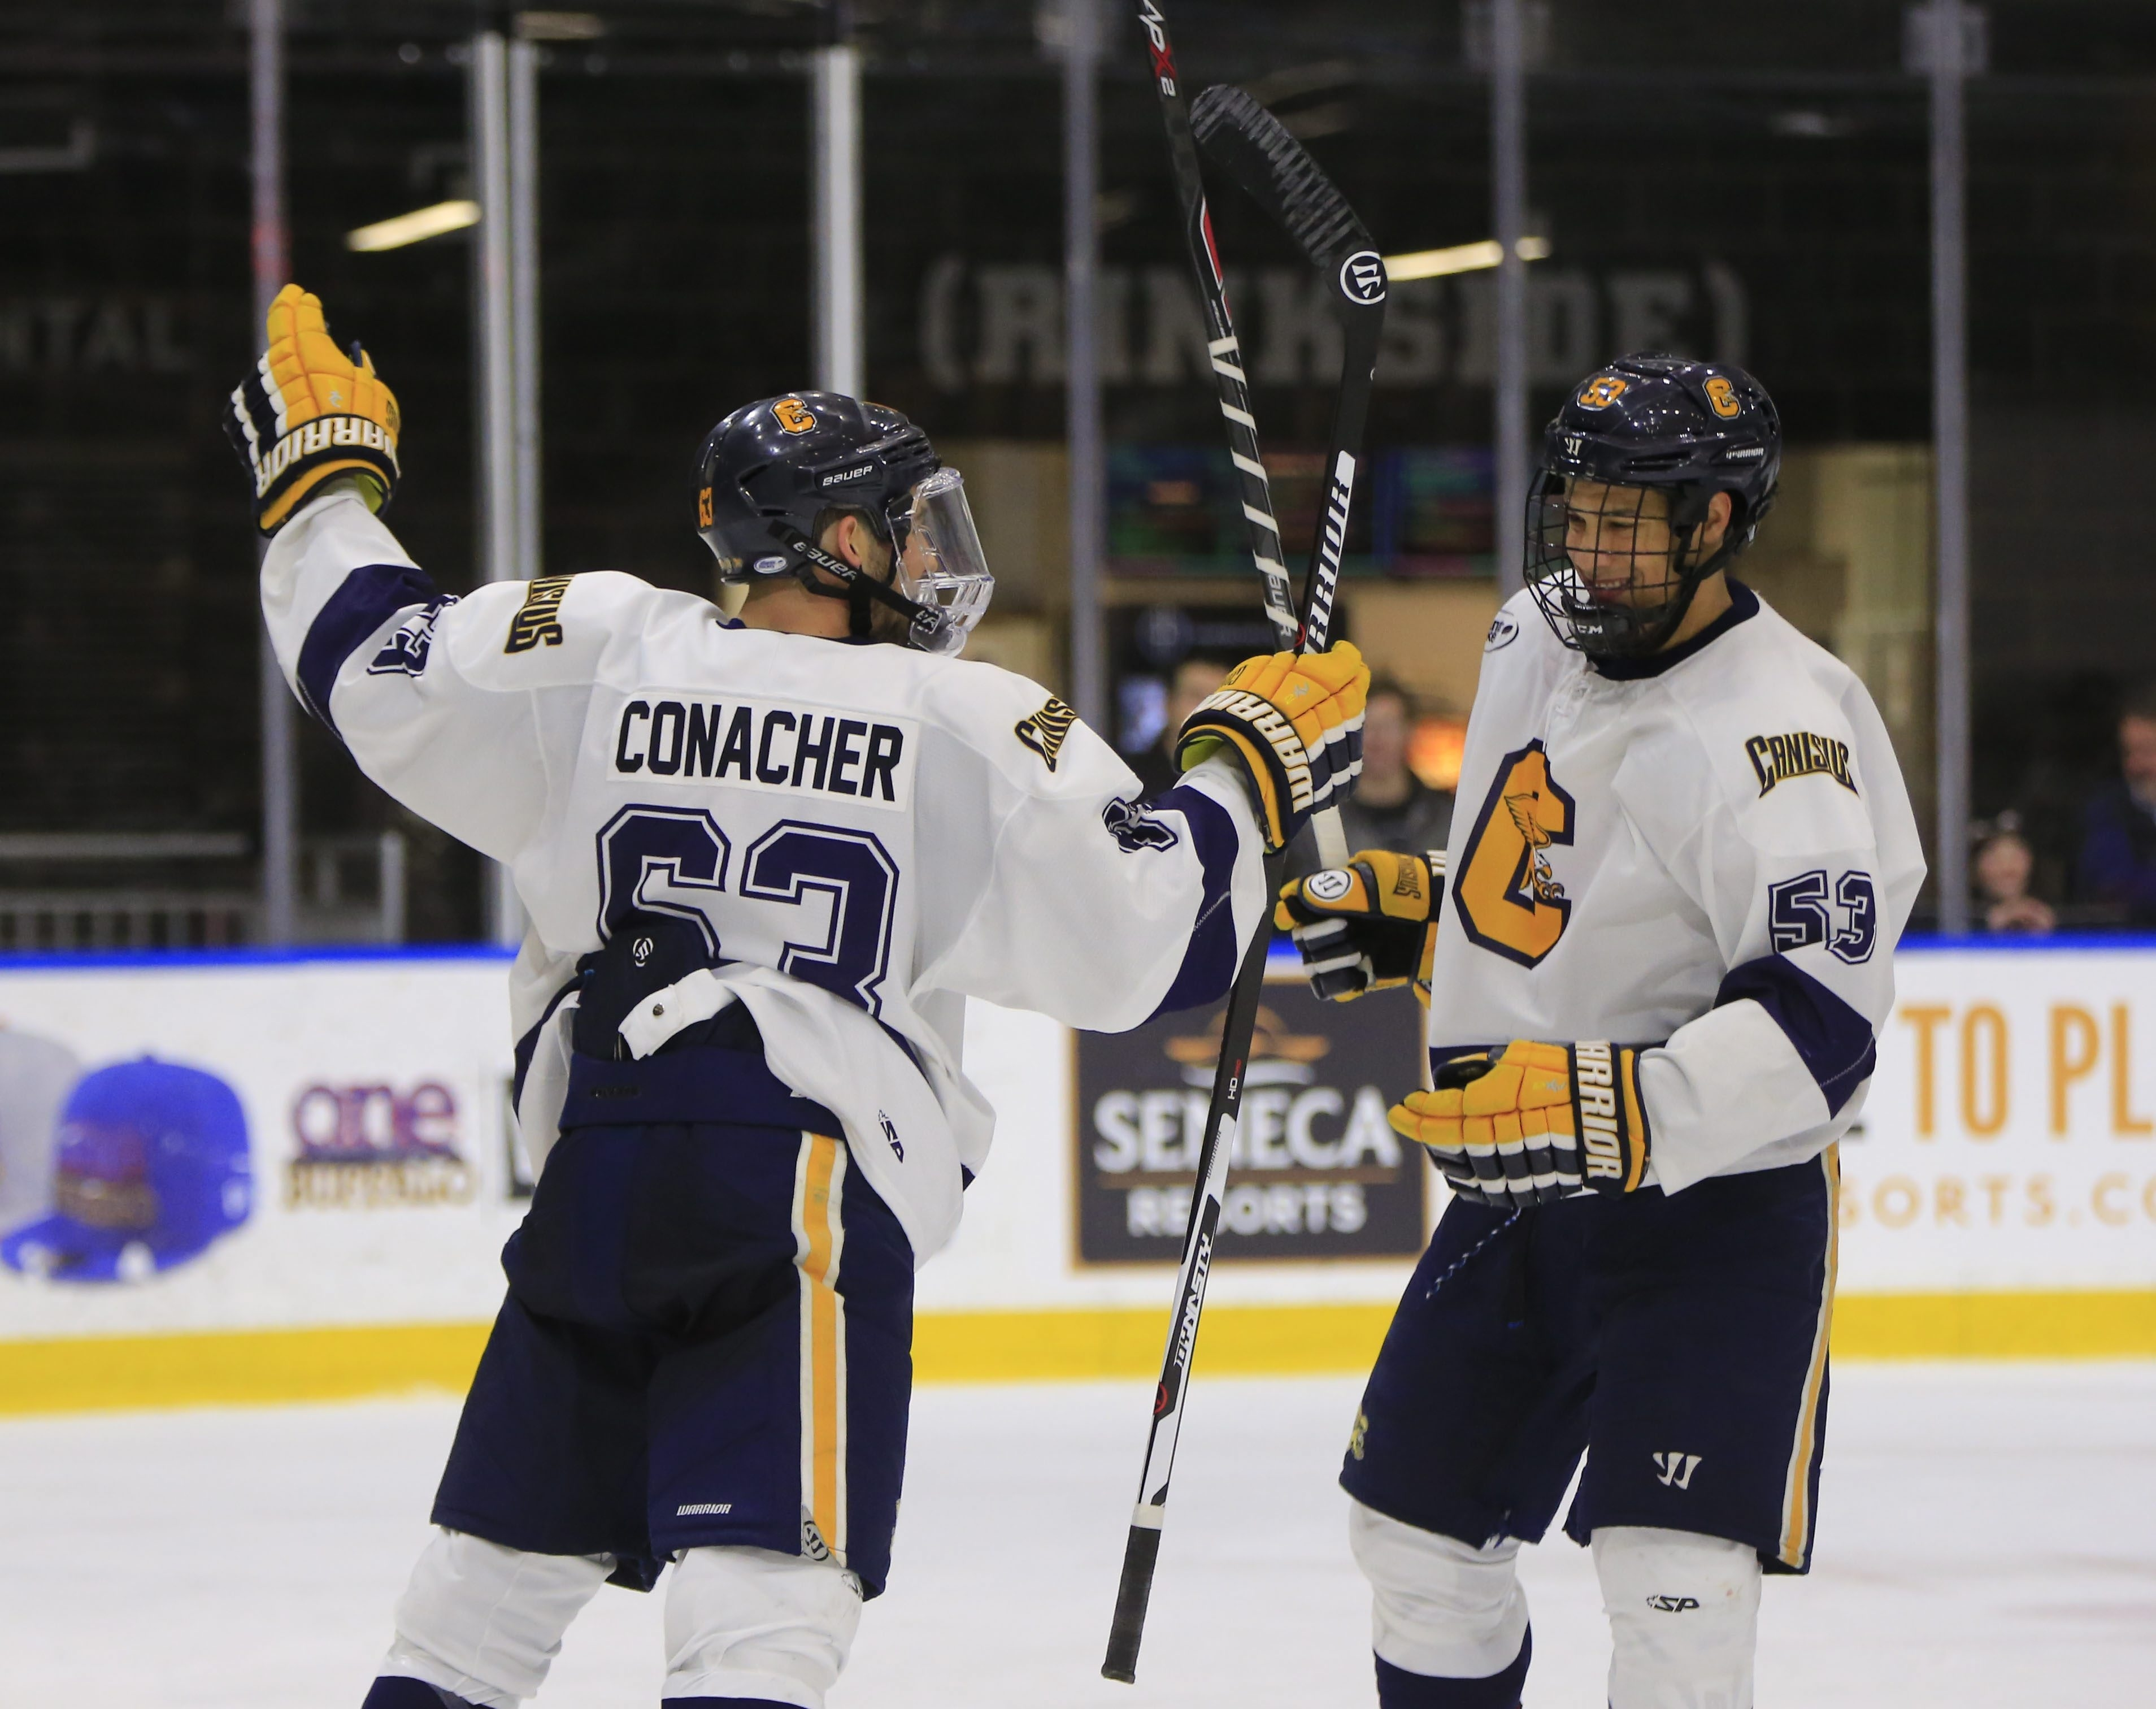 Shane Conacher of Canisius celebrates his goal with Cameron Heath in the third period against Niagara on Thursday at HarborCenter.